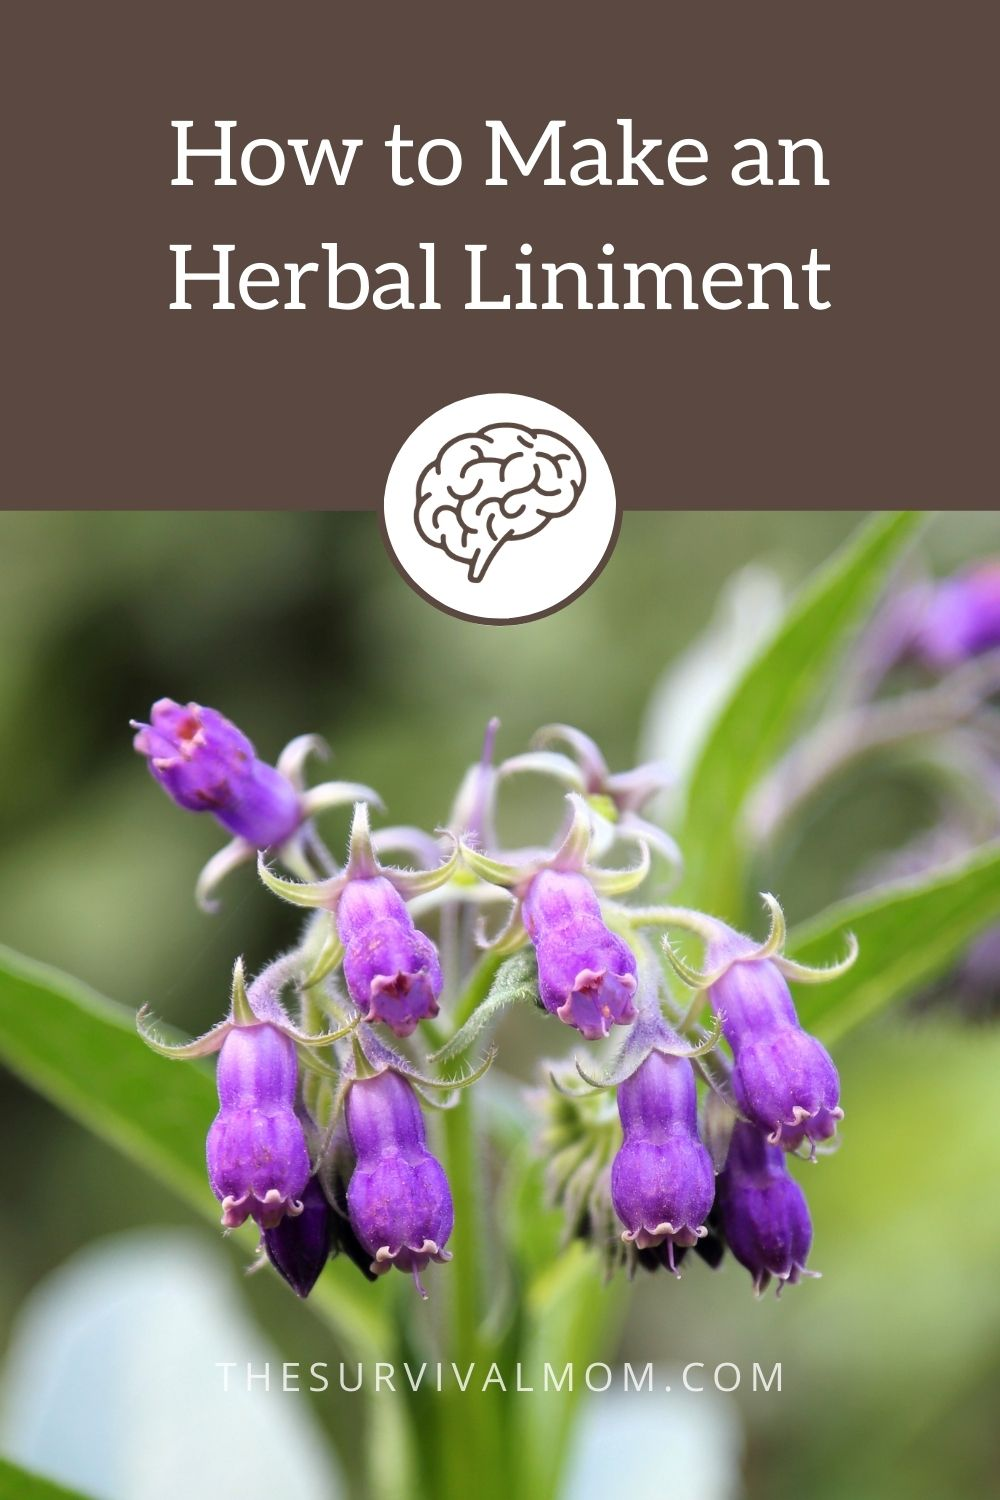 How to Make an Herbal Liniment via The Survival Mom